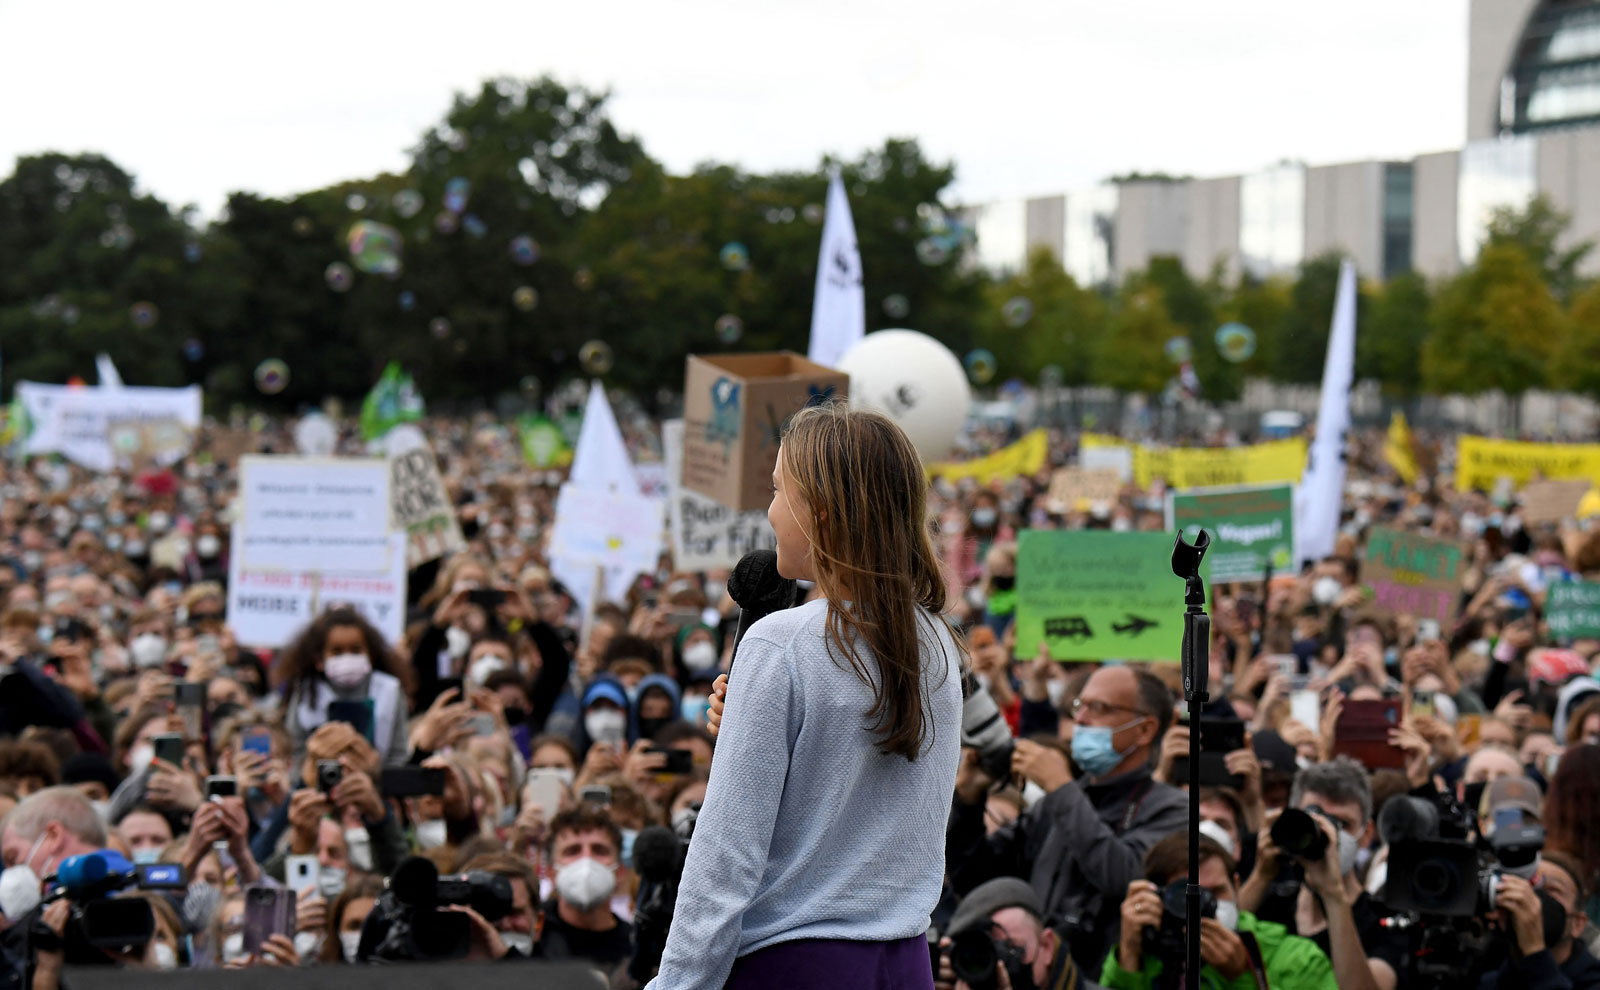 Swedish climate activist Greta Thunberg speaks to demonstrators taking part in Fridays for Future's global climate strike in Berlin, Germany.